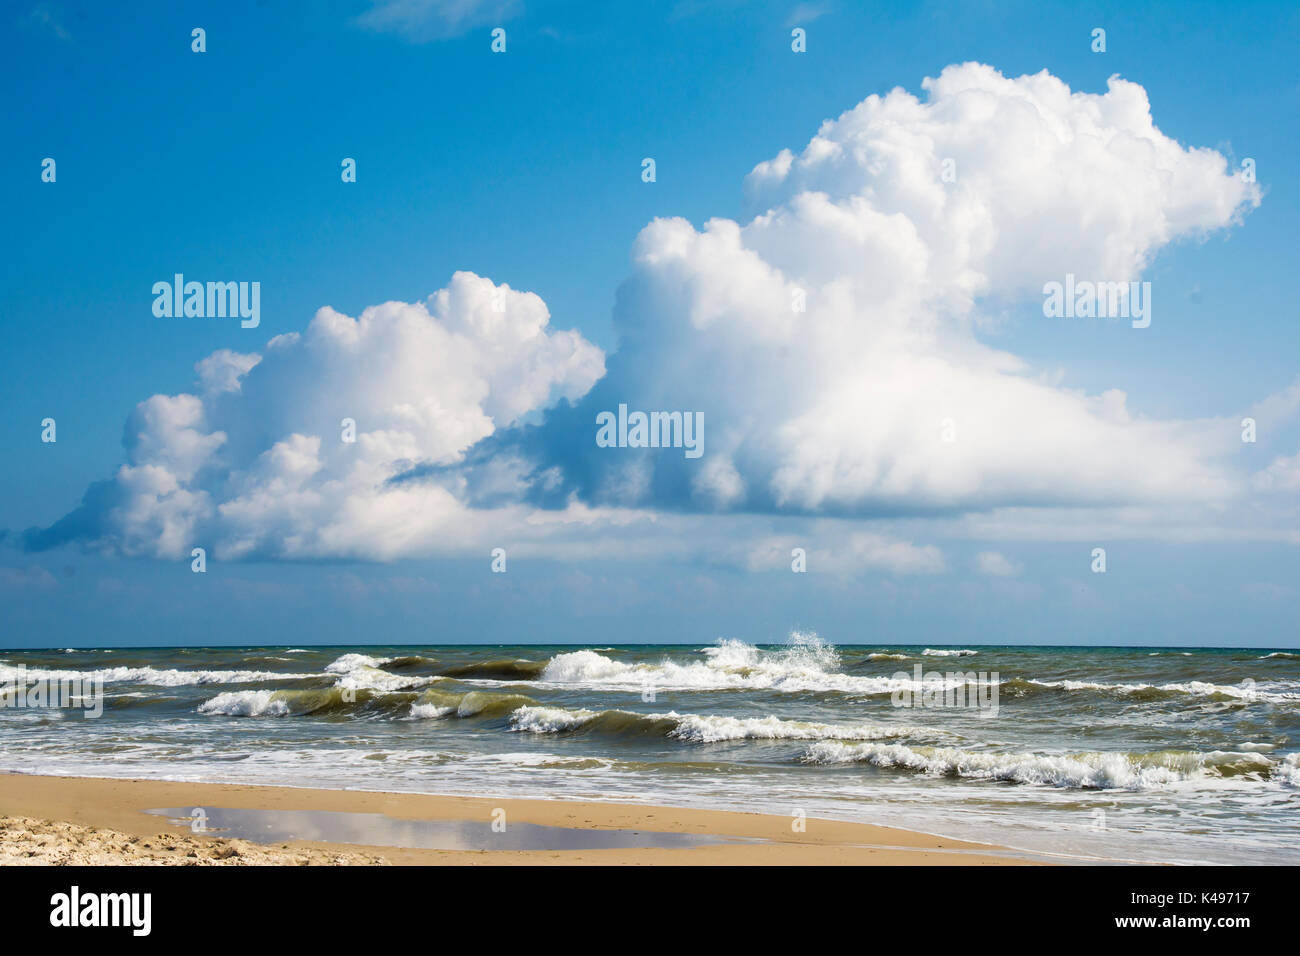 Bright blue sky with clouds over stormy sea - Stock Image